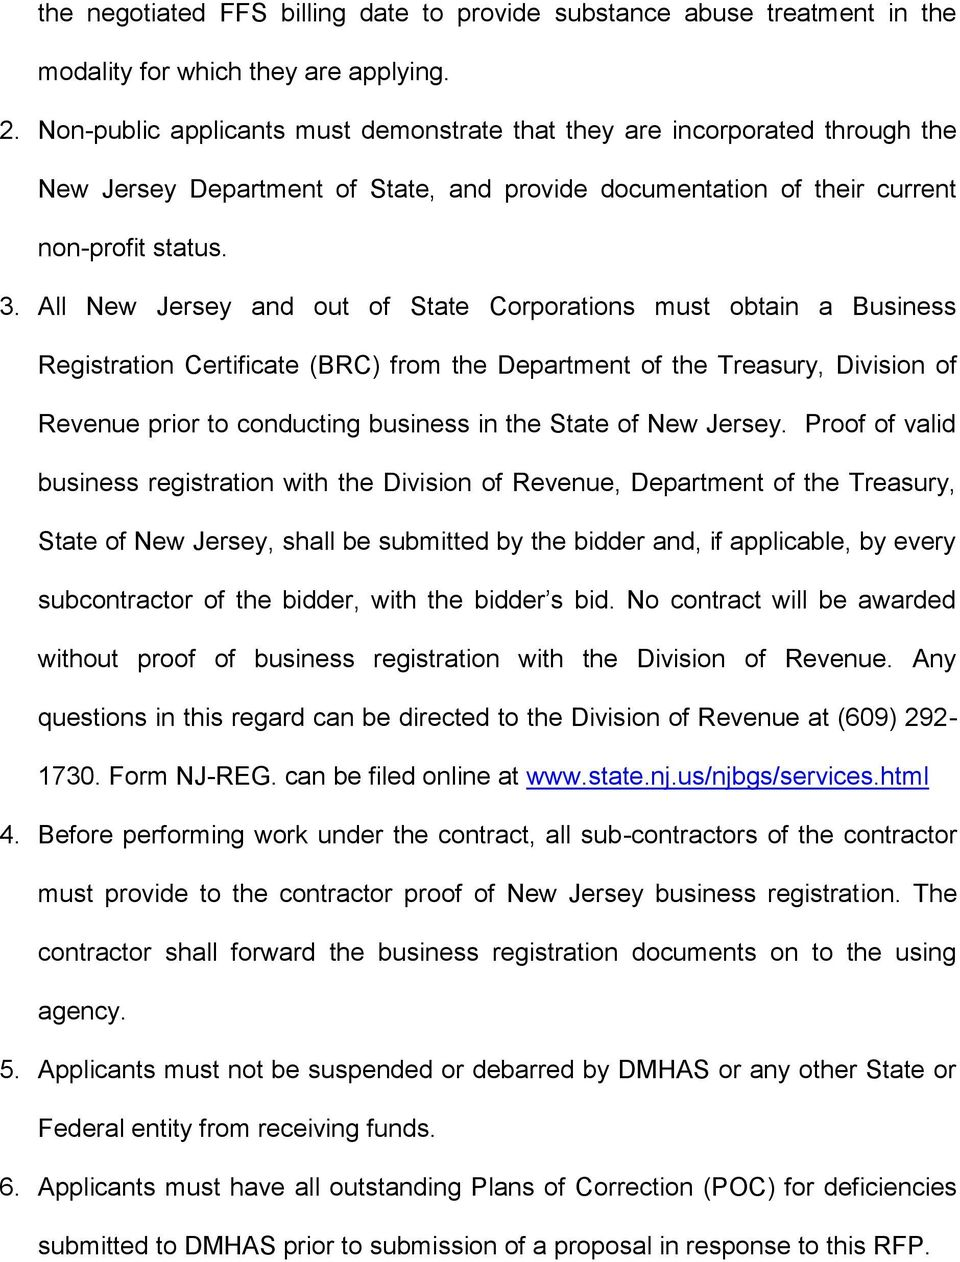 All New Jersey and out of State Corporations must obtain a Business Registration Certificate (BRC) from the Department of the Treasury, Division of Revenue prior to conducting business in the State